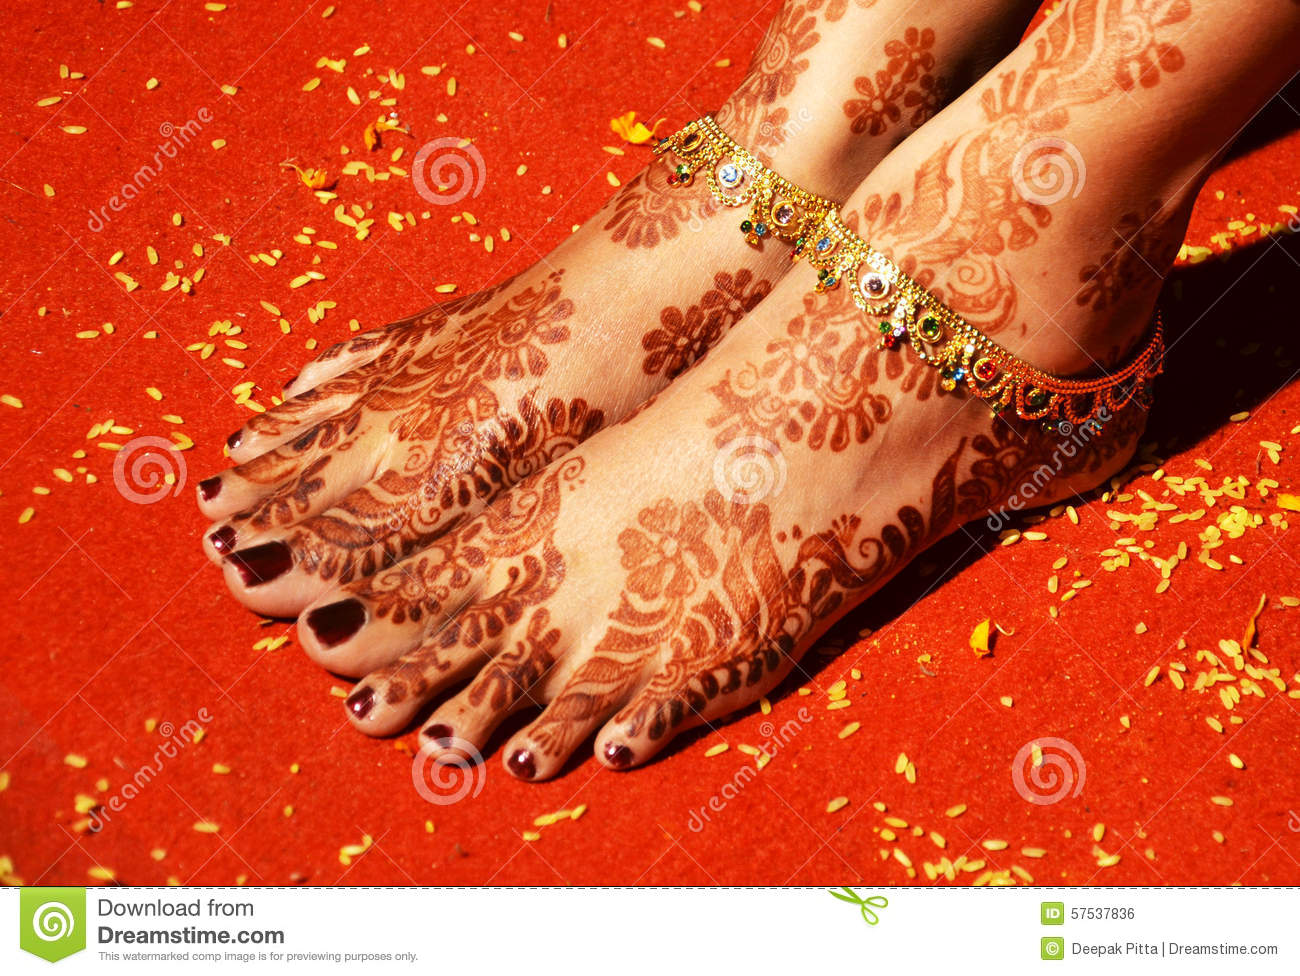 Henna Mehndi Vector Free Download : Henna art and anklets on brides feet stock photo image of india